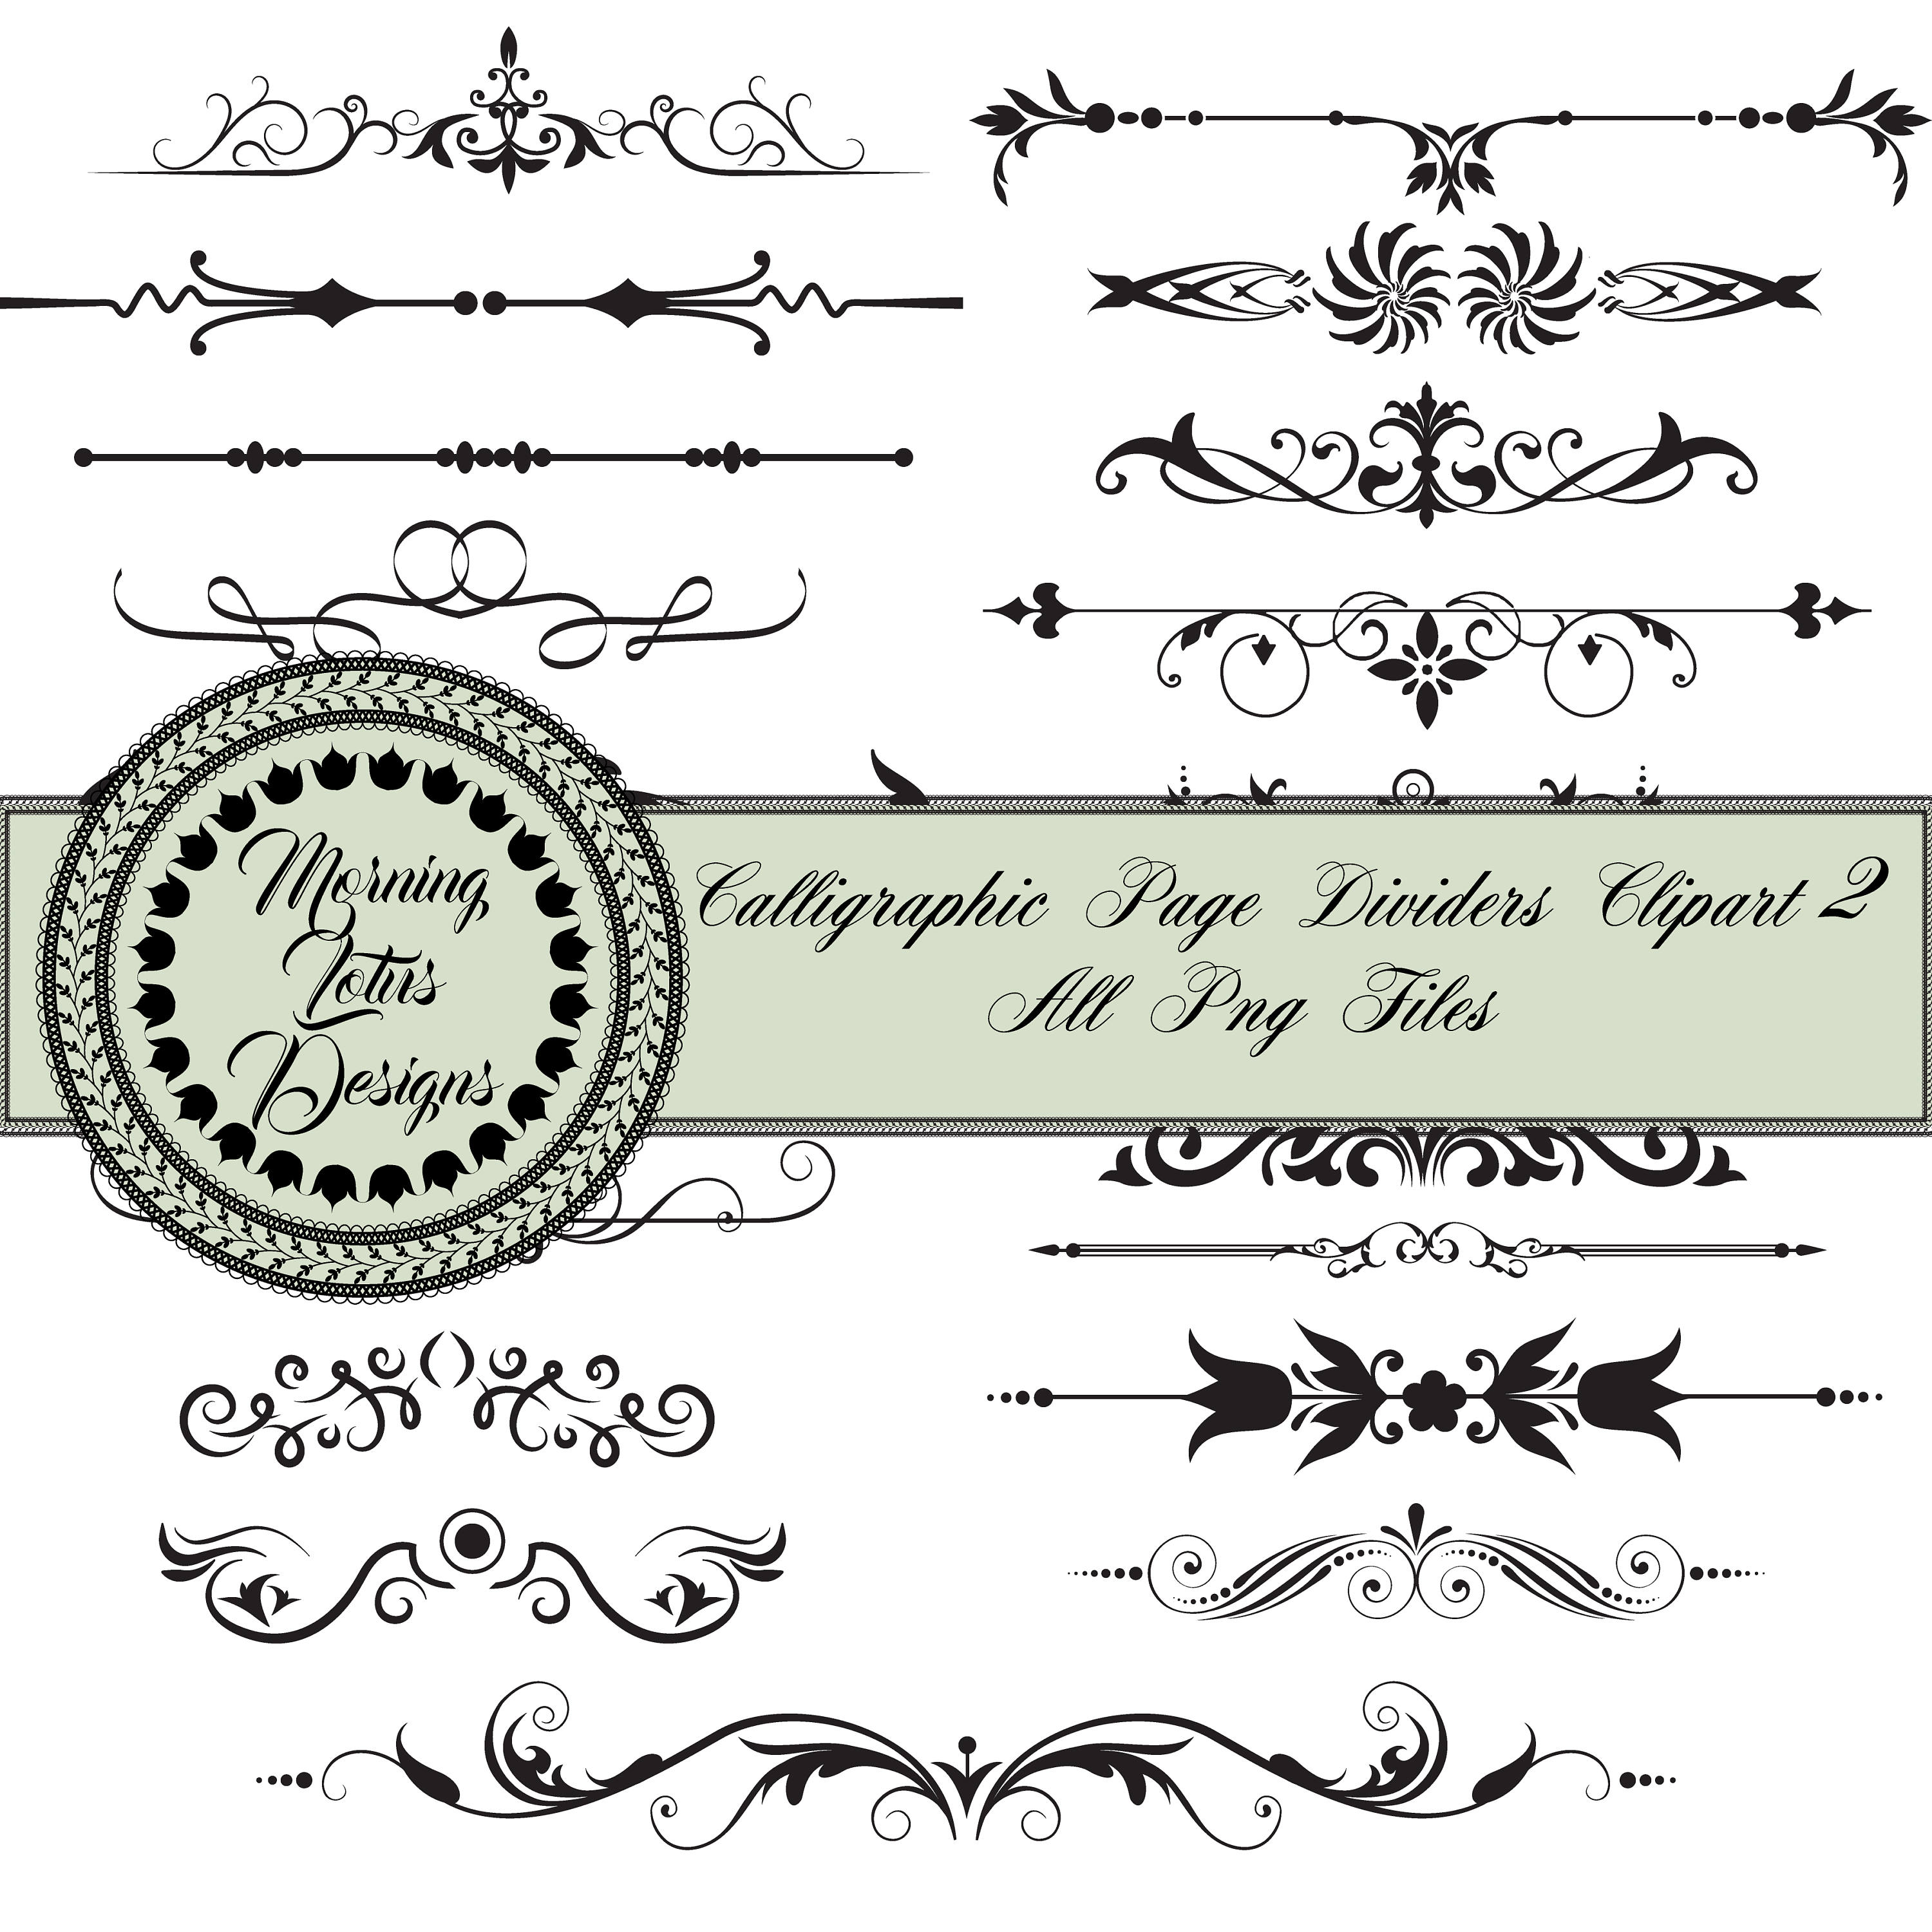 Line Dividers,Page divider clipart, Text Divider Clipart, Decorative  Dividers, Digital text dividers, Wedding Dividers , Ornamental Divider.